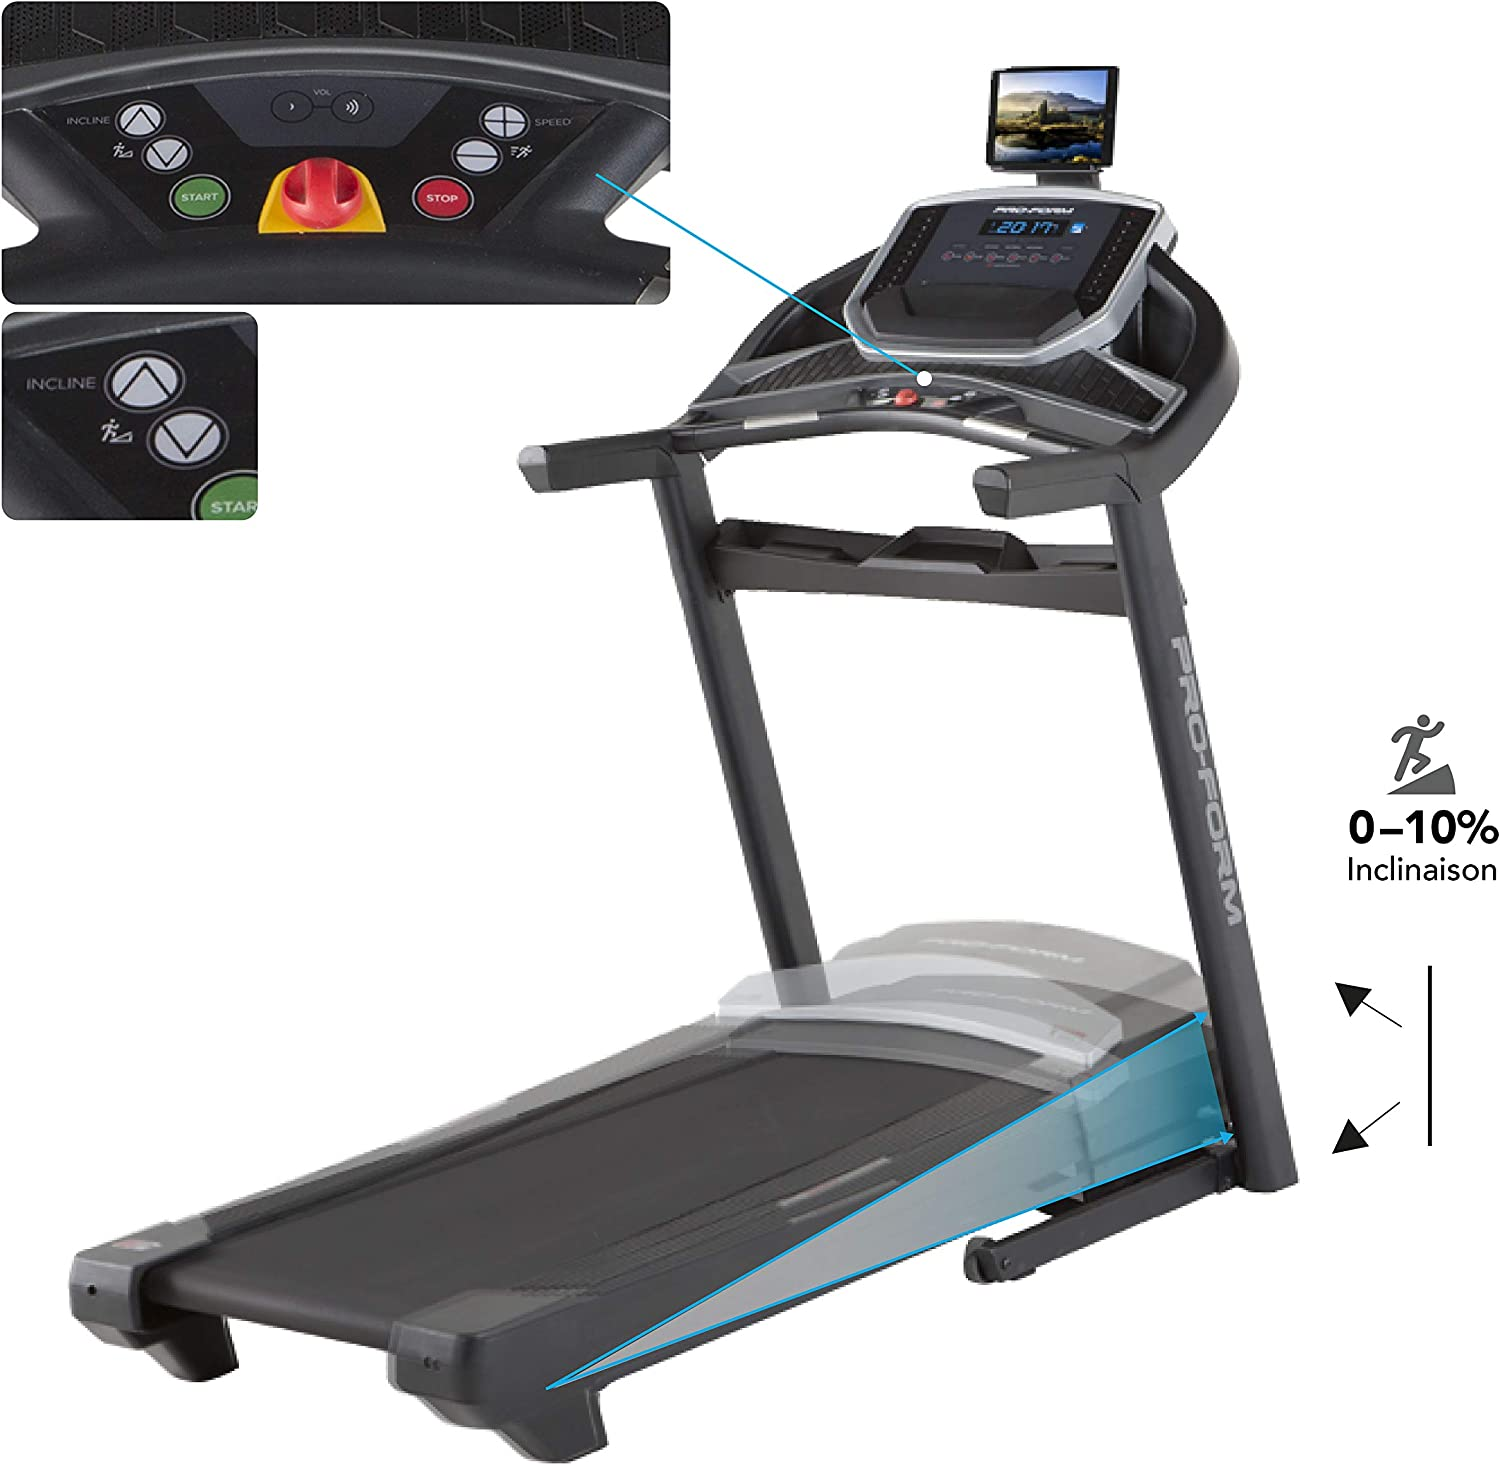 ProForm - Cinta De Correr Power 575I: Amazon.es: Deportes y aire libre